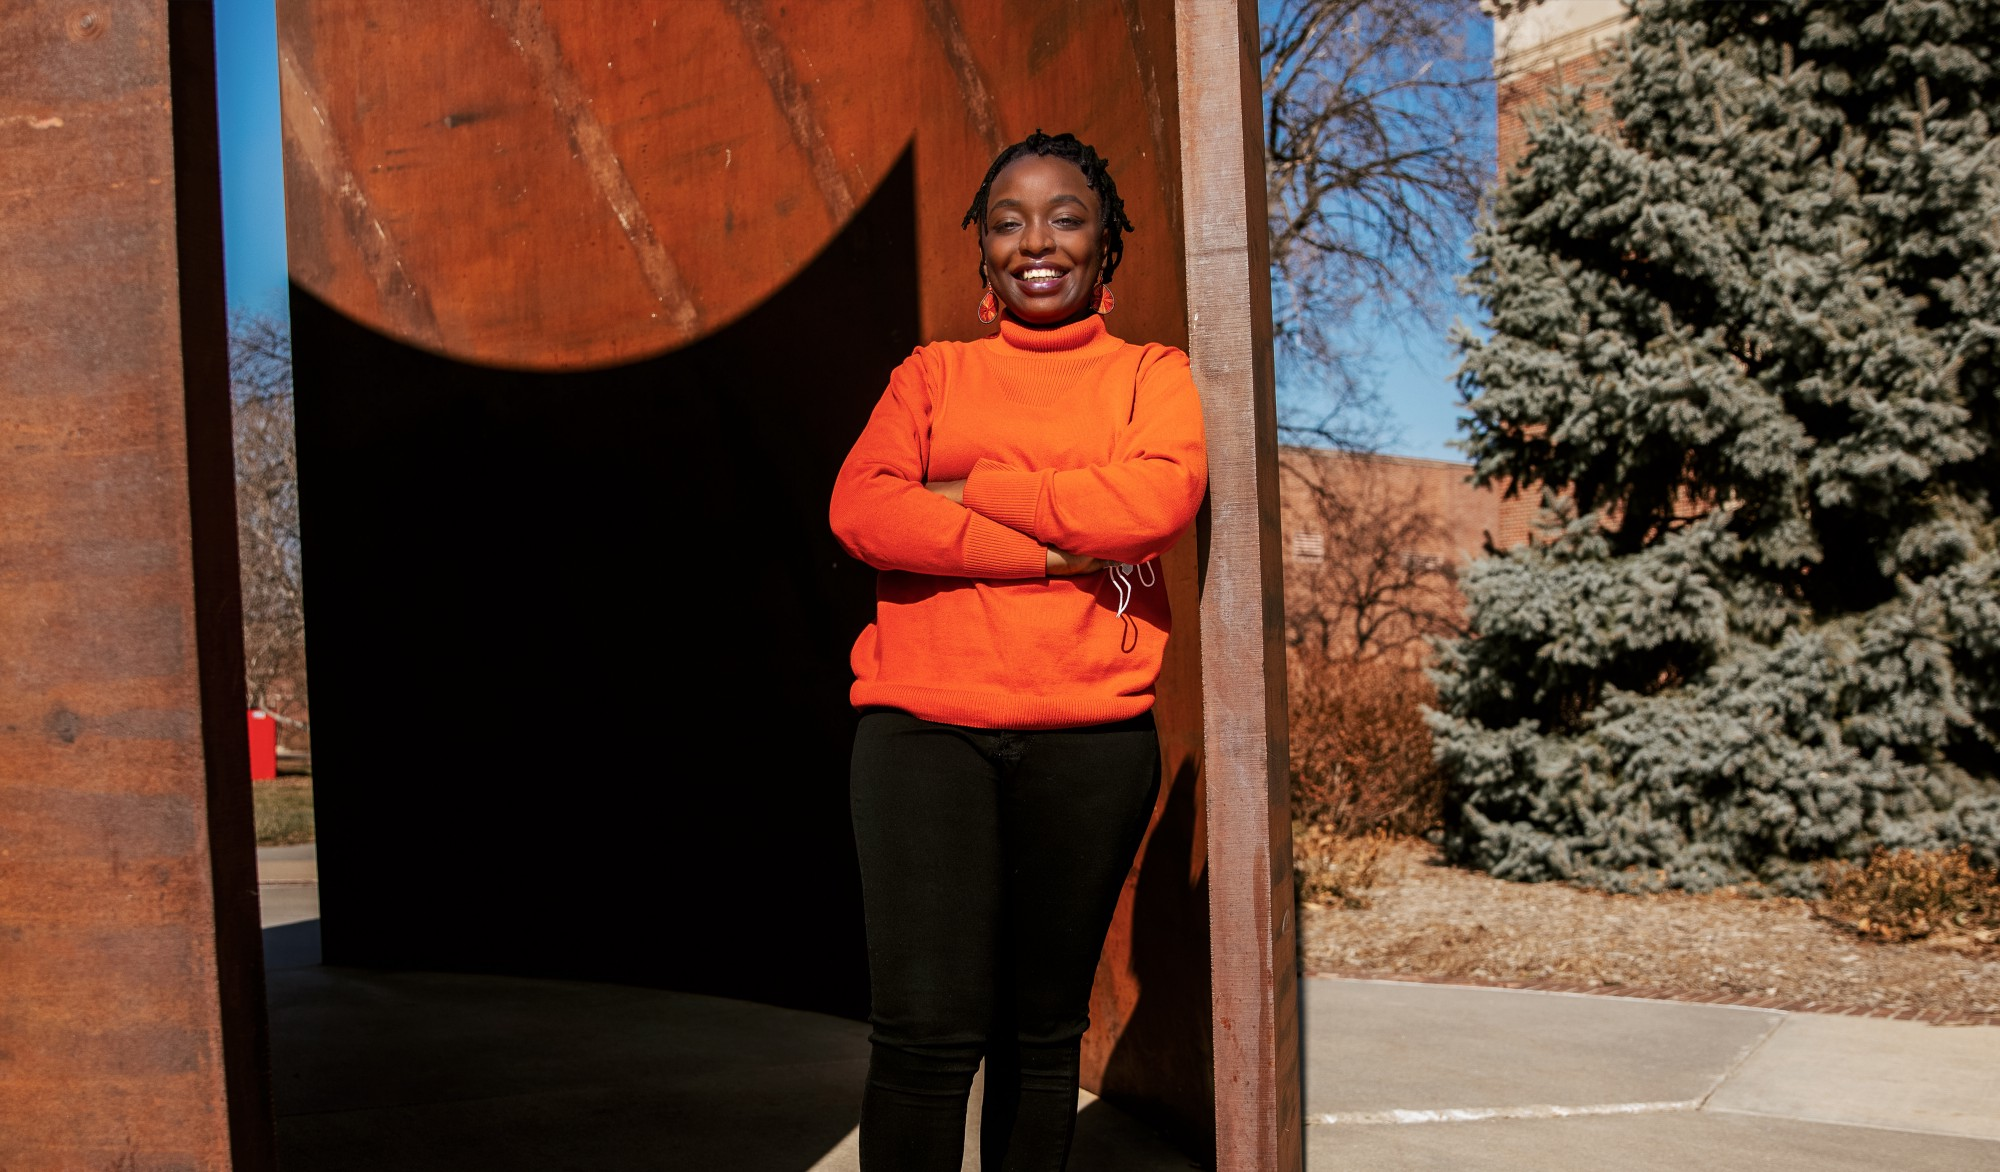 Shemsa leans against the the Greenpoint sculpture near Love Library and smiles for the camera